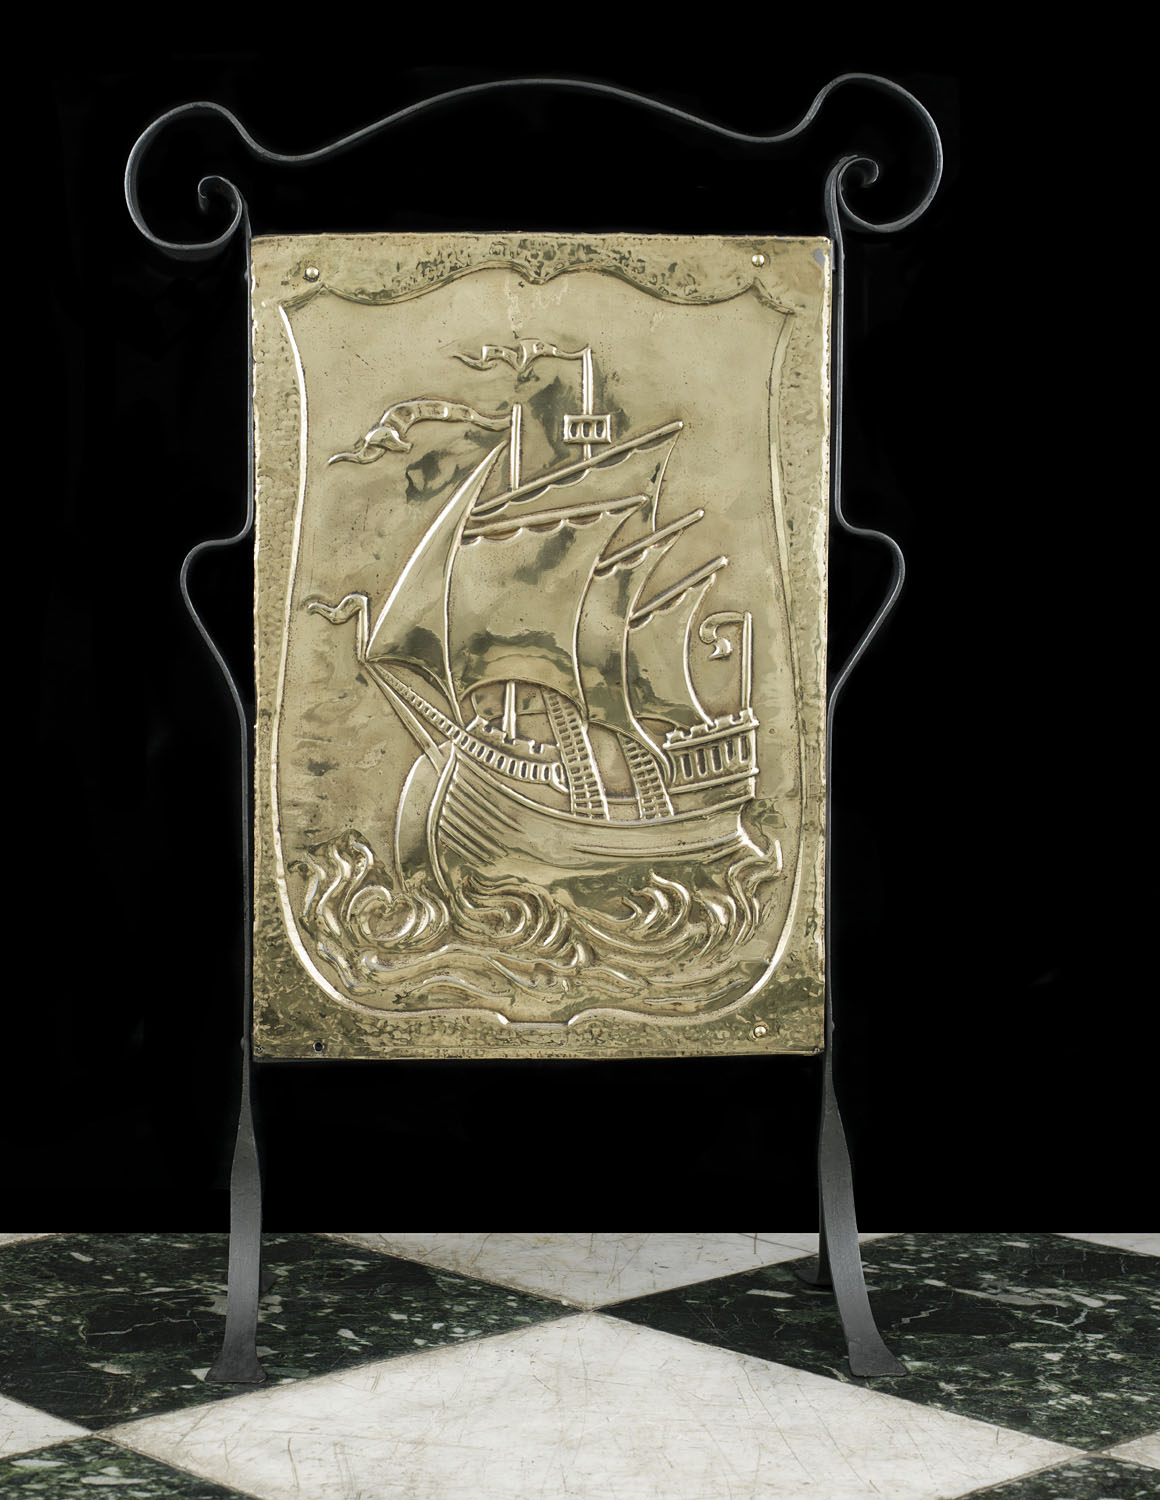 Antique Arts and Crafts Fire Screen with Galleon decoration